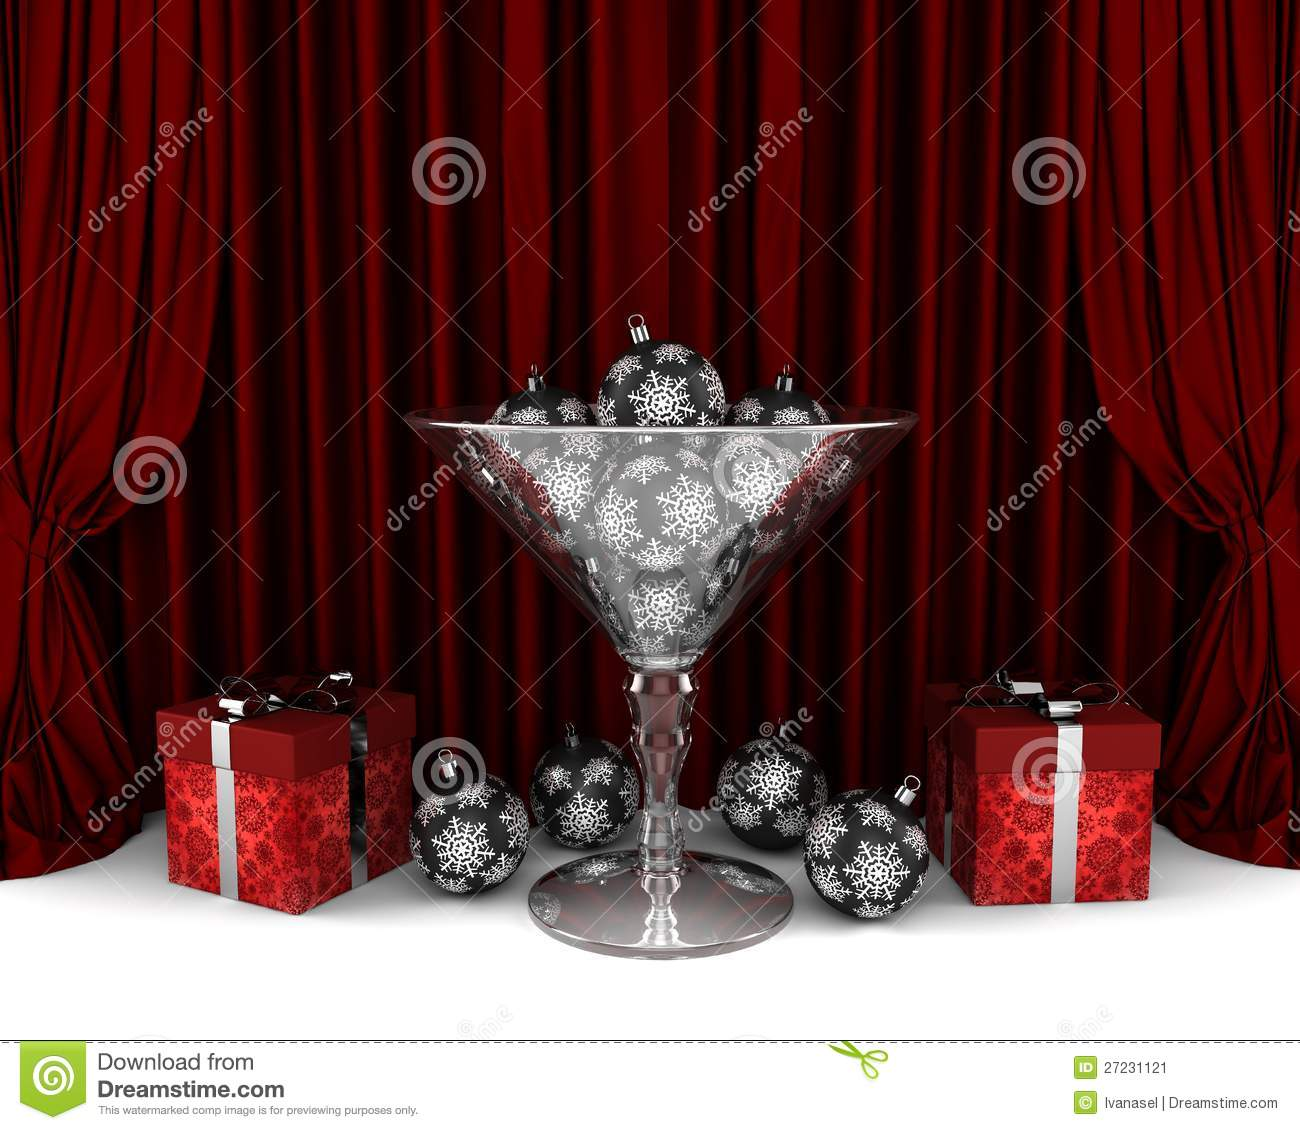 Glass decorations - Glass Cup With New Year Decorations And Gifrts